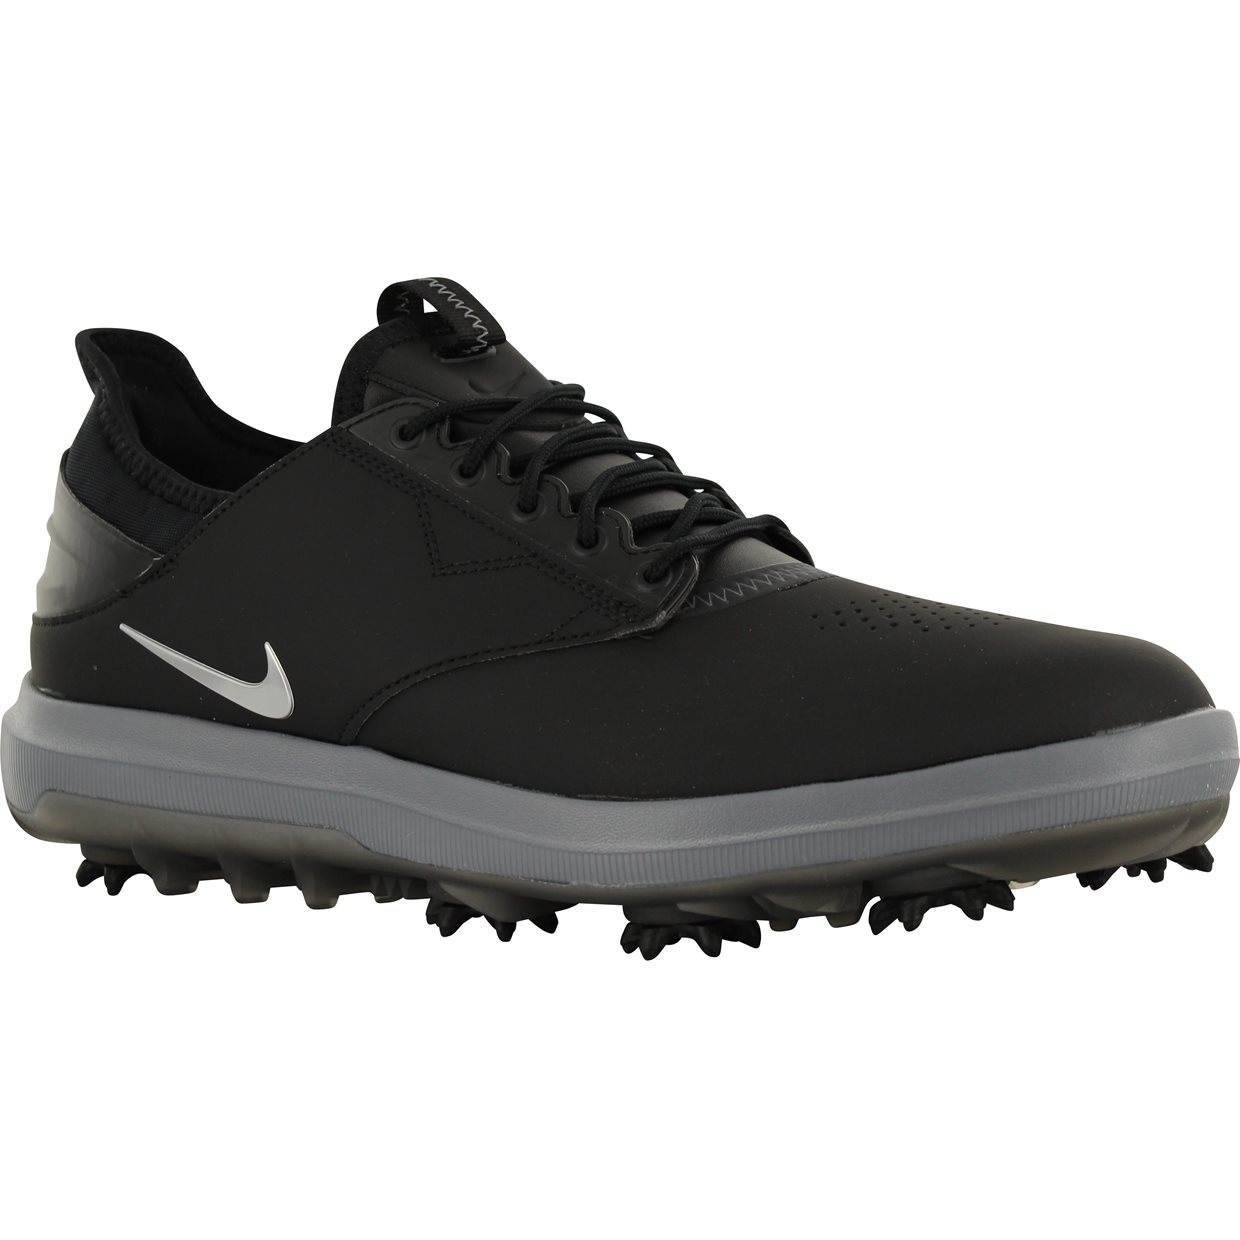 25bb59f42944 Nike Air Zoom Direct Golf Shoe in Black Metallic Silver Red